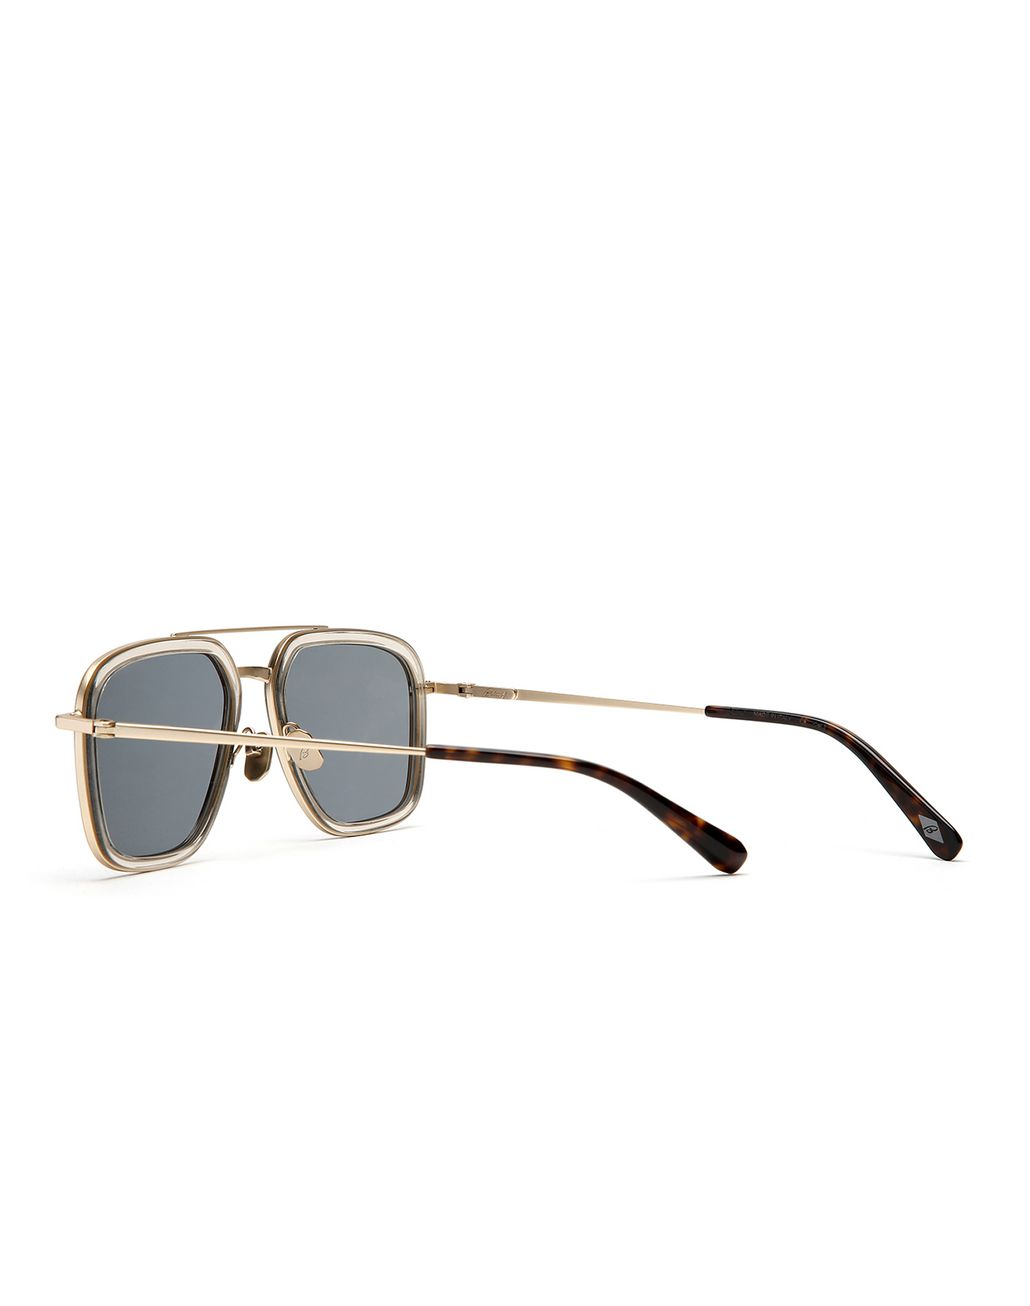 BRIONI Transparent Sand Geometric Shape Sunglasses with Green Lenses  Sunglasses [*** pickupInStoreShippingNotGuaranteed_info ***] d